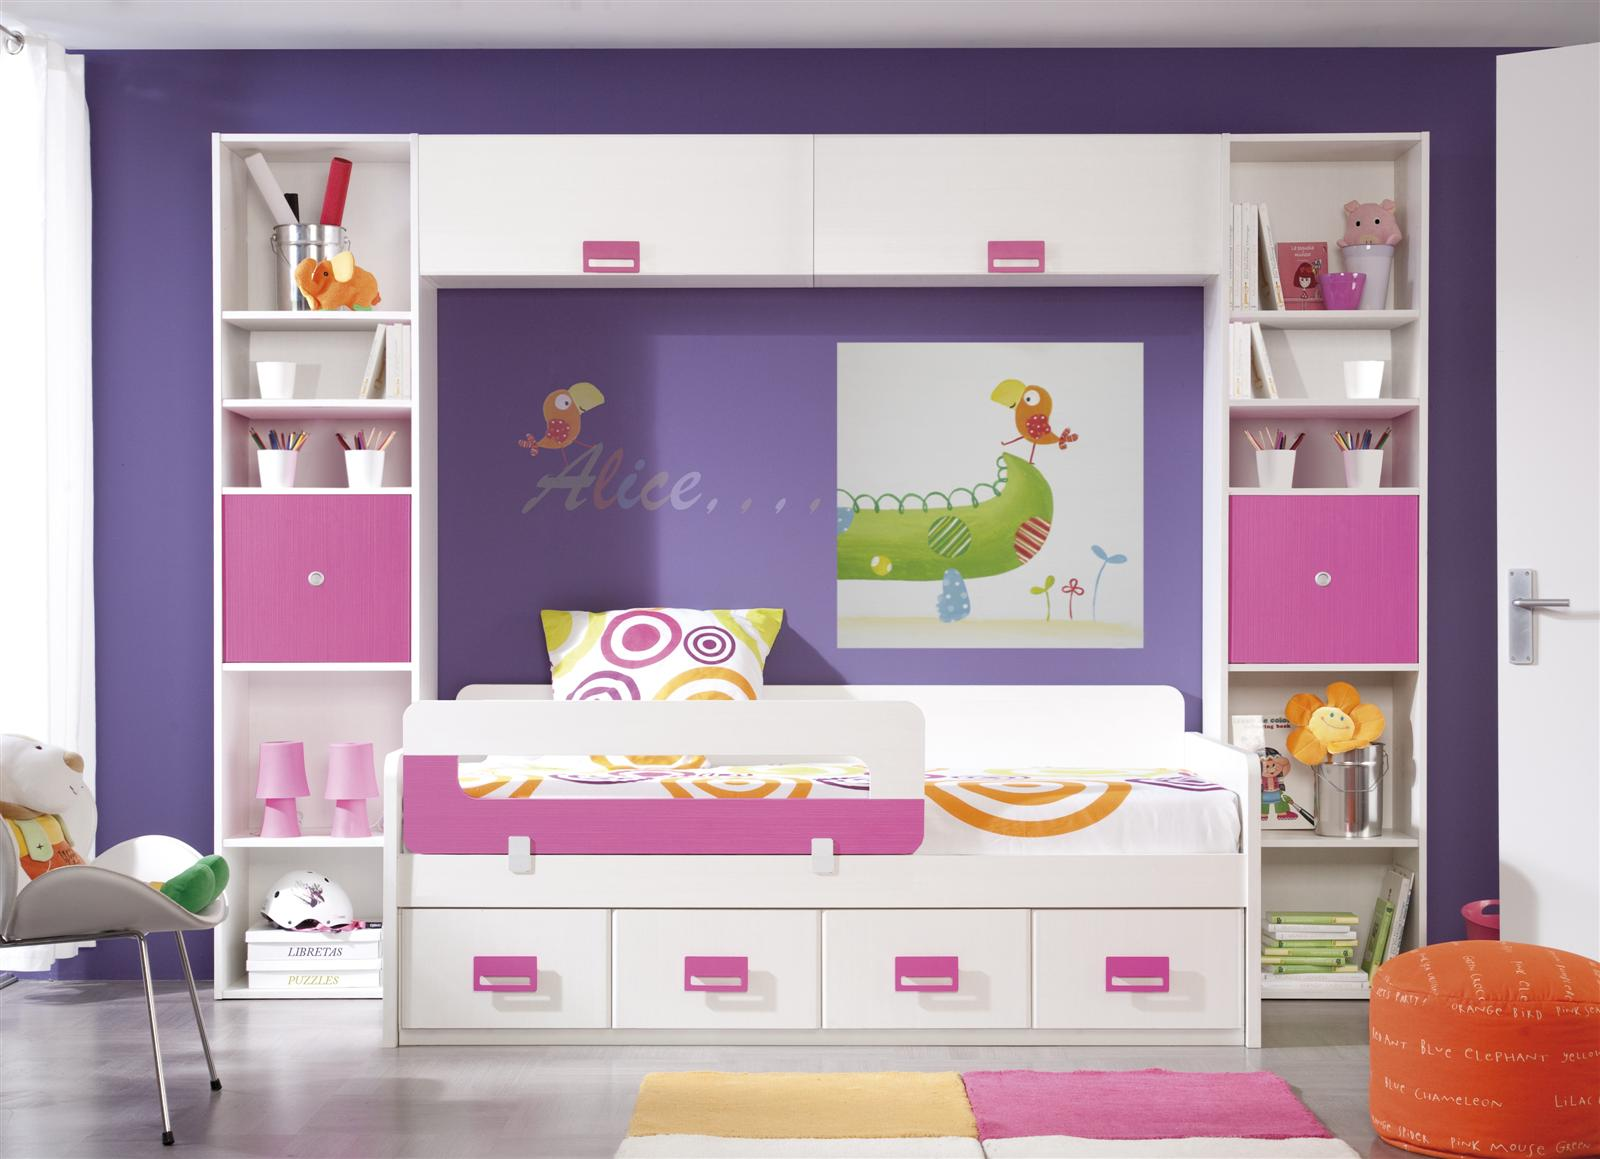 301 moved permanently - Ideas para decorar dormitorio infantil ...